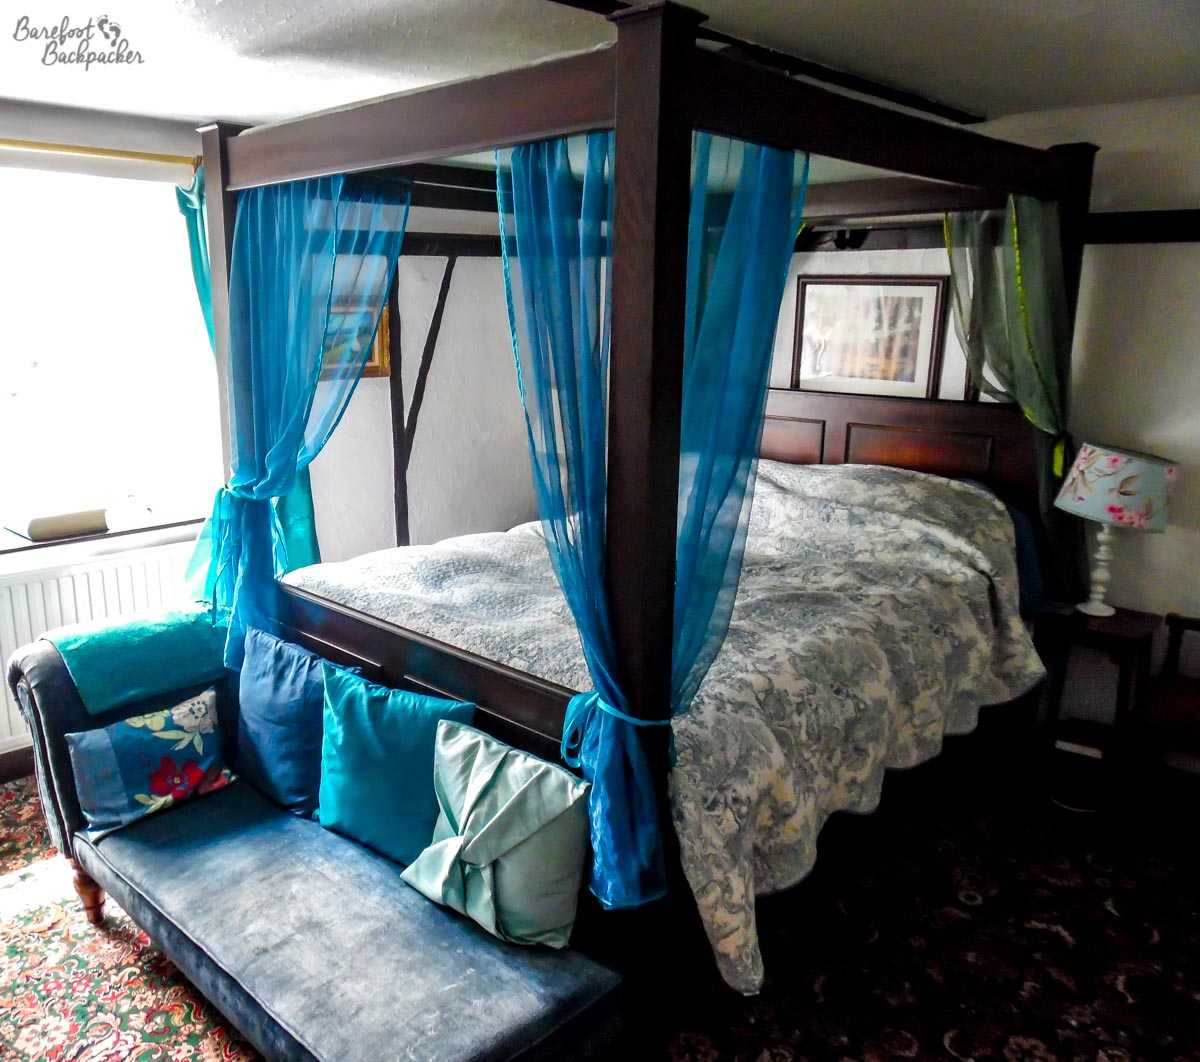 Inside one of the bedrooms